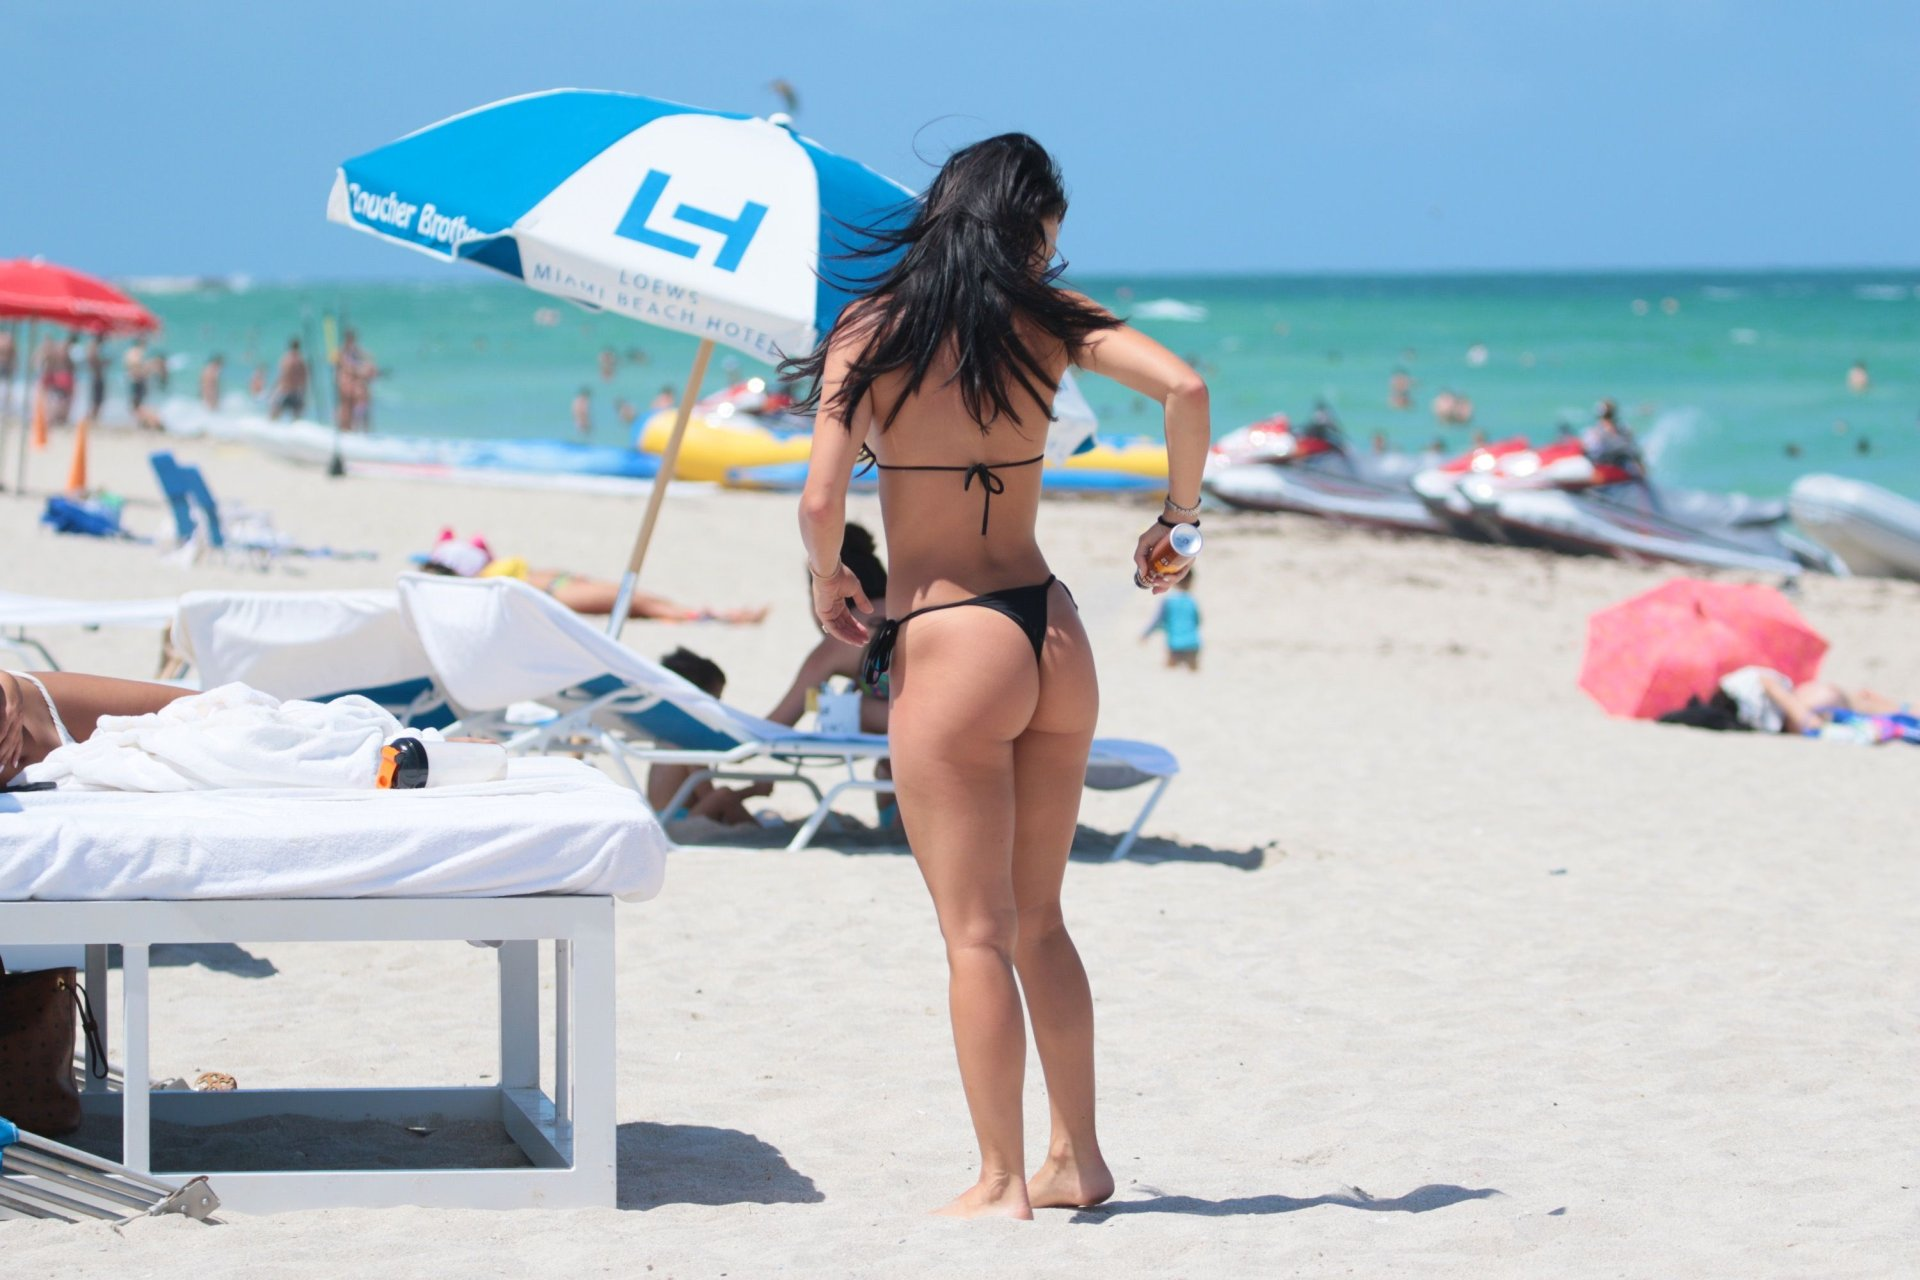 Best hotels to go topless in miami beach